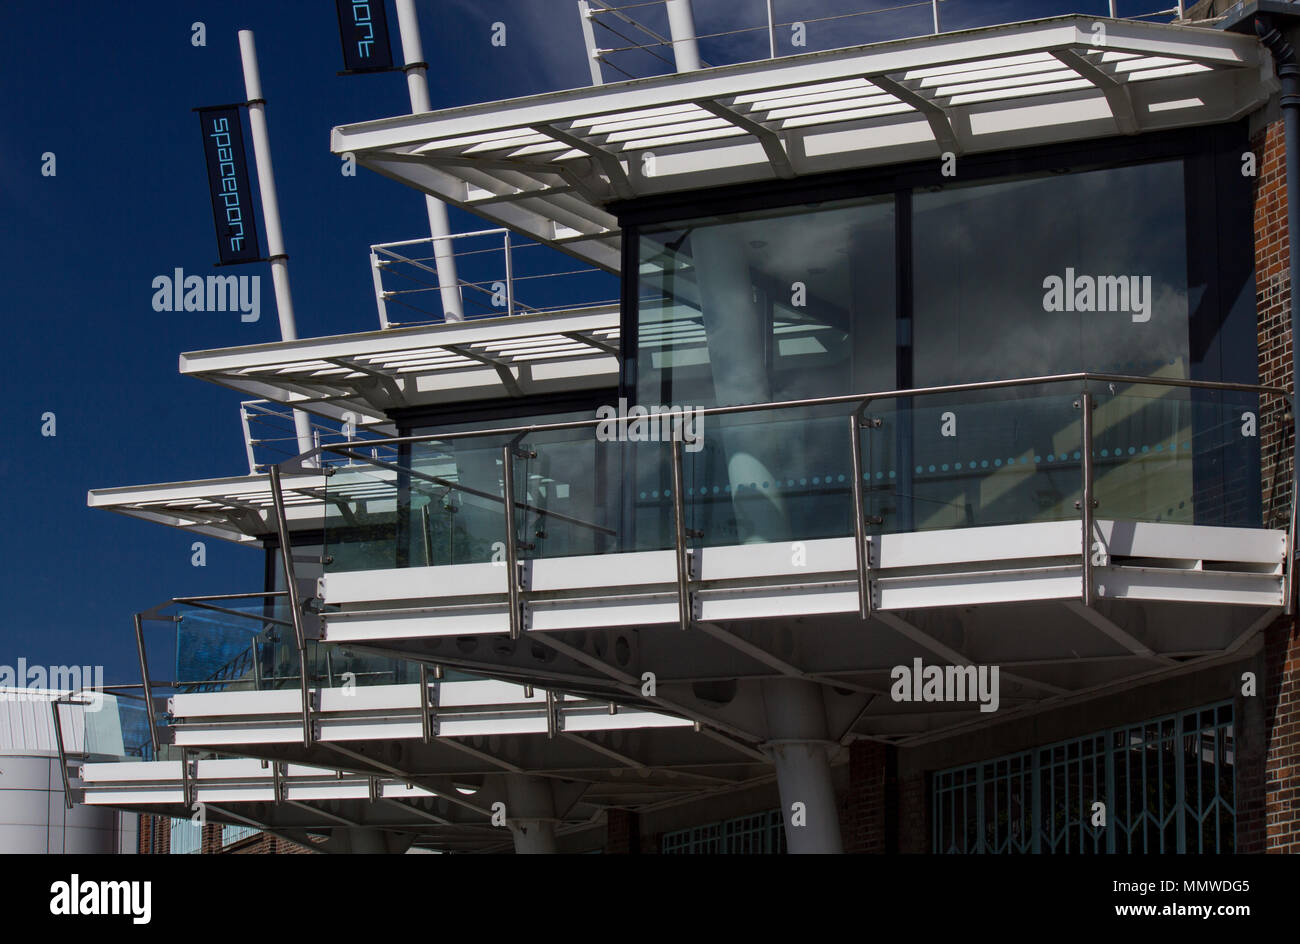 A collection of windows at Spaceport, Seacome Ferry, Wallasey, Wirral, Merseyside - Stock Image